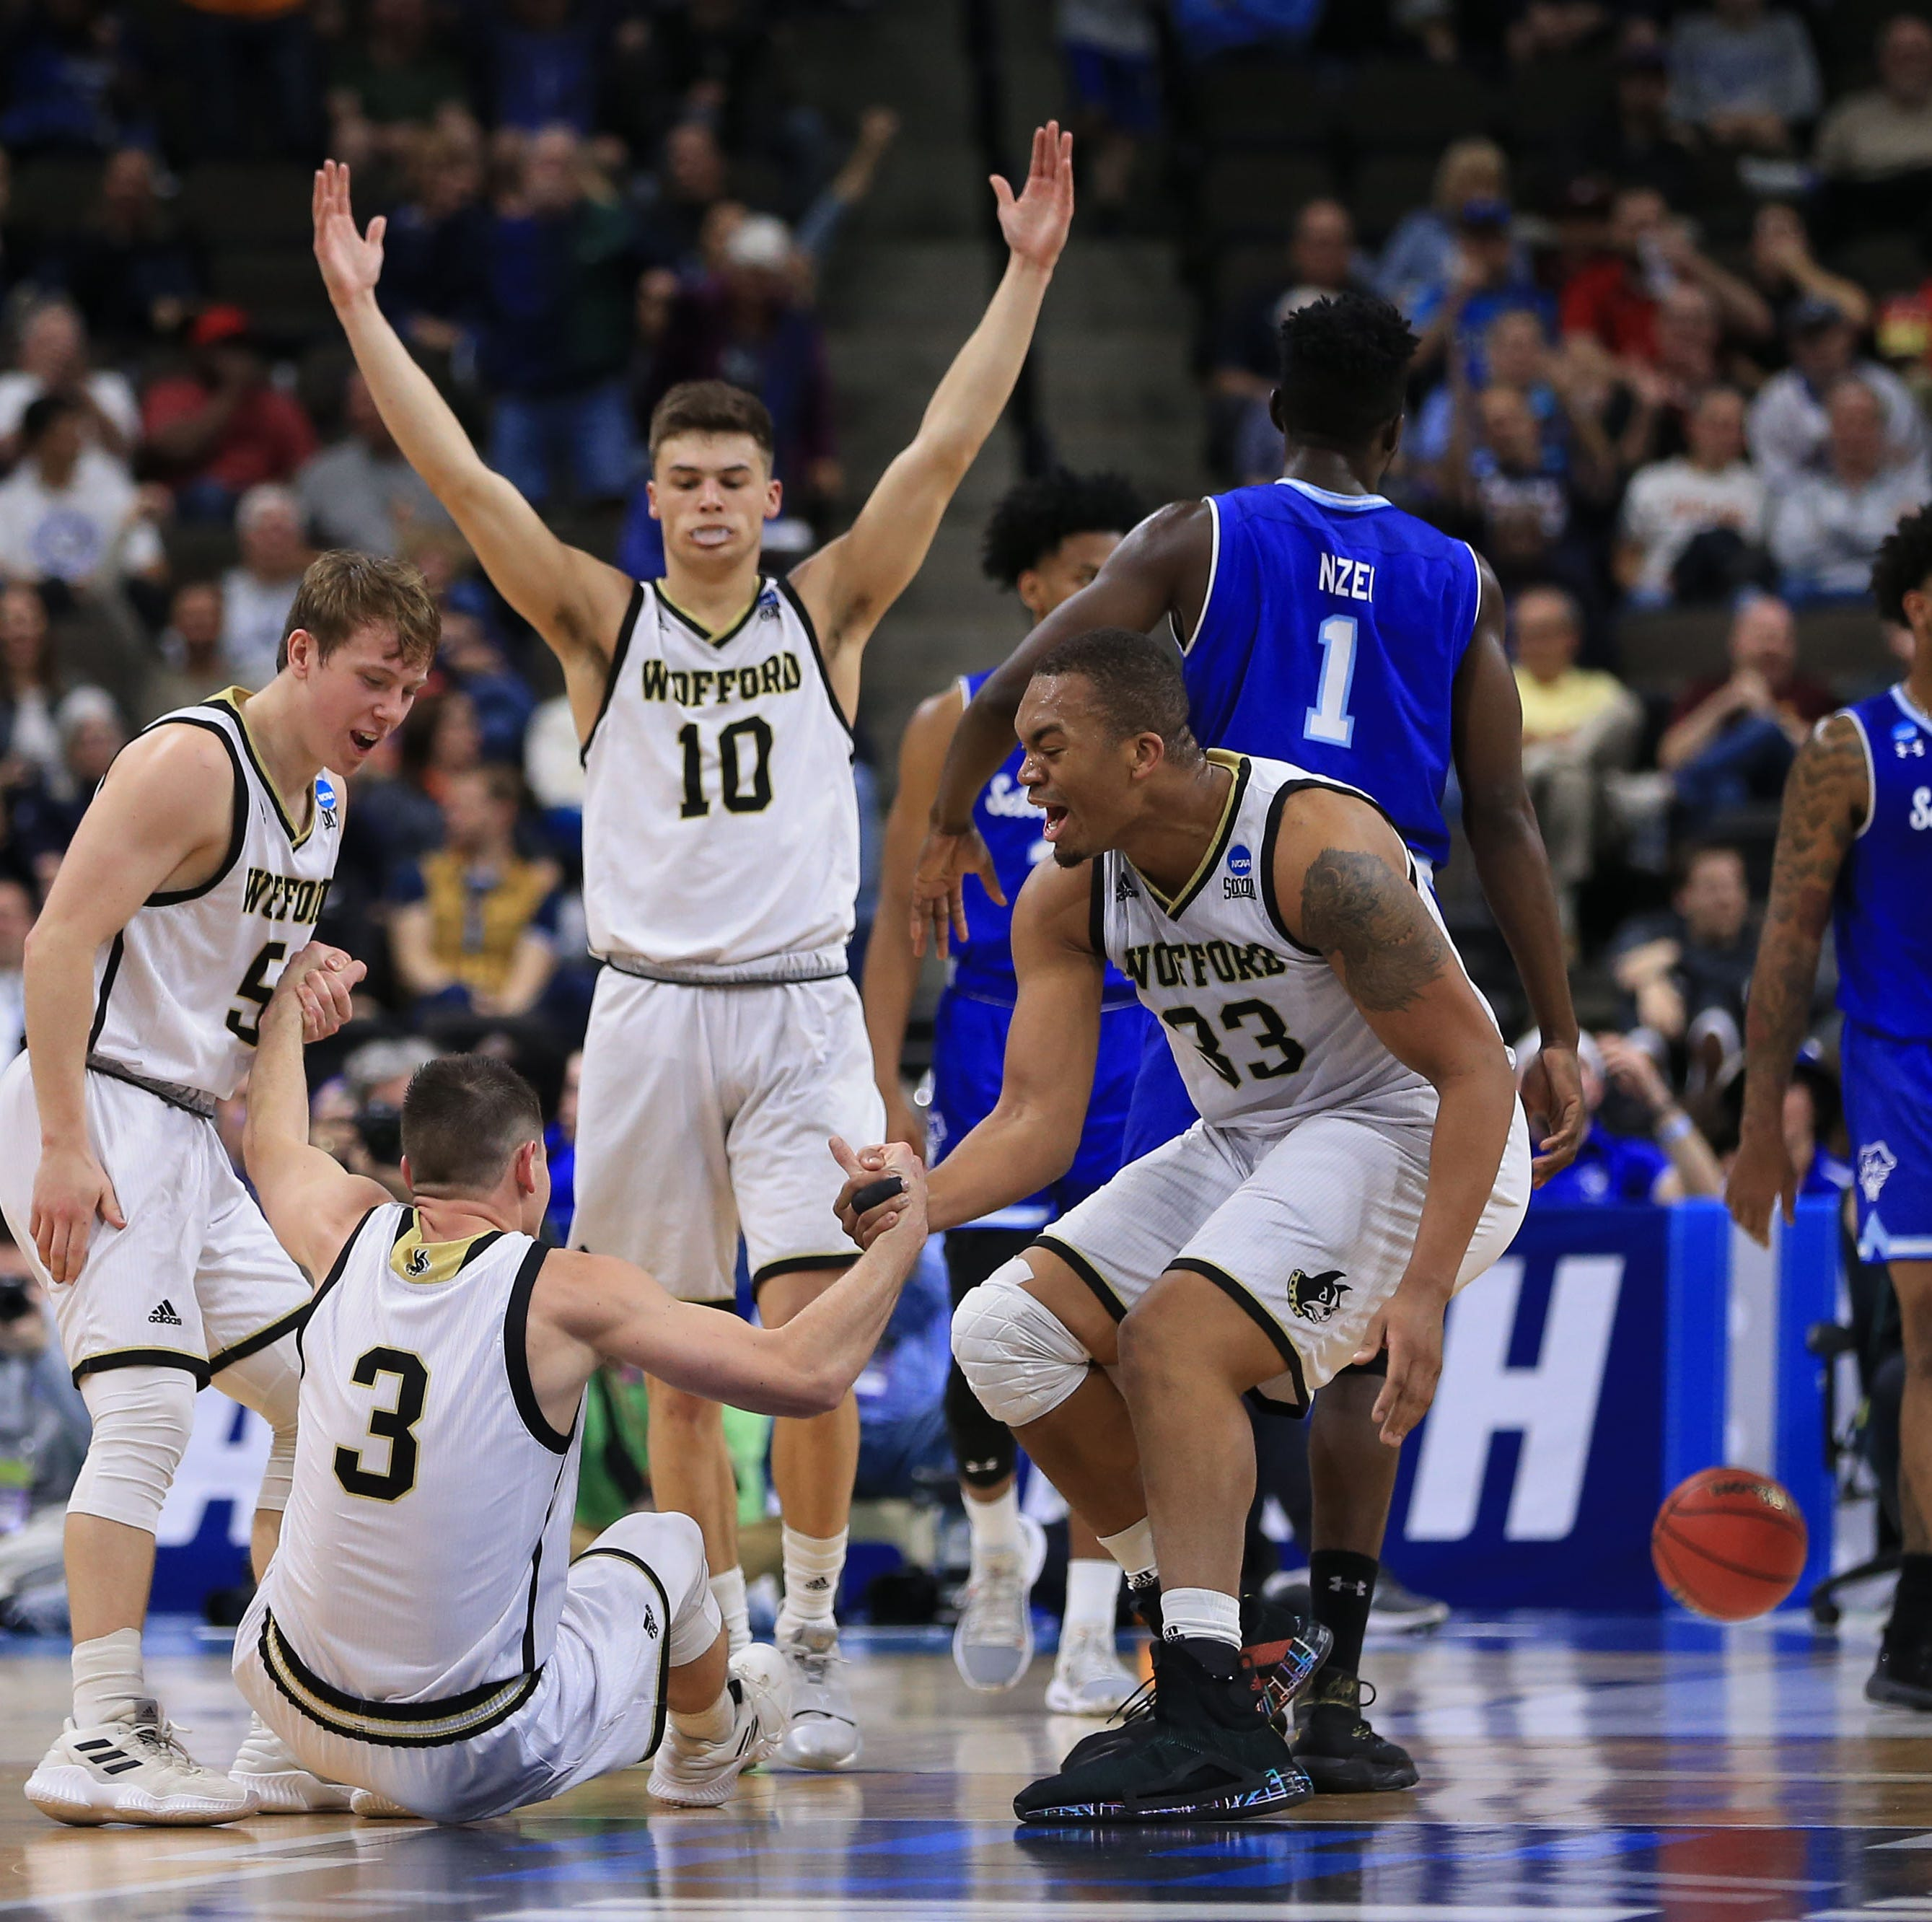 Seton Hall gets shot down by red-hot Wofford in NCAA Tournament opener